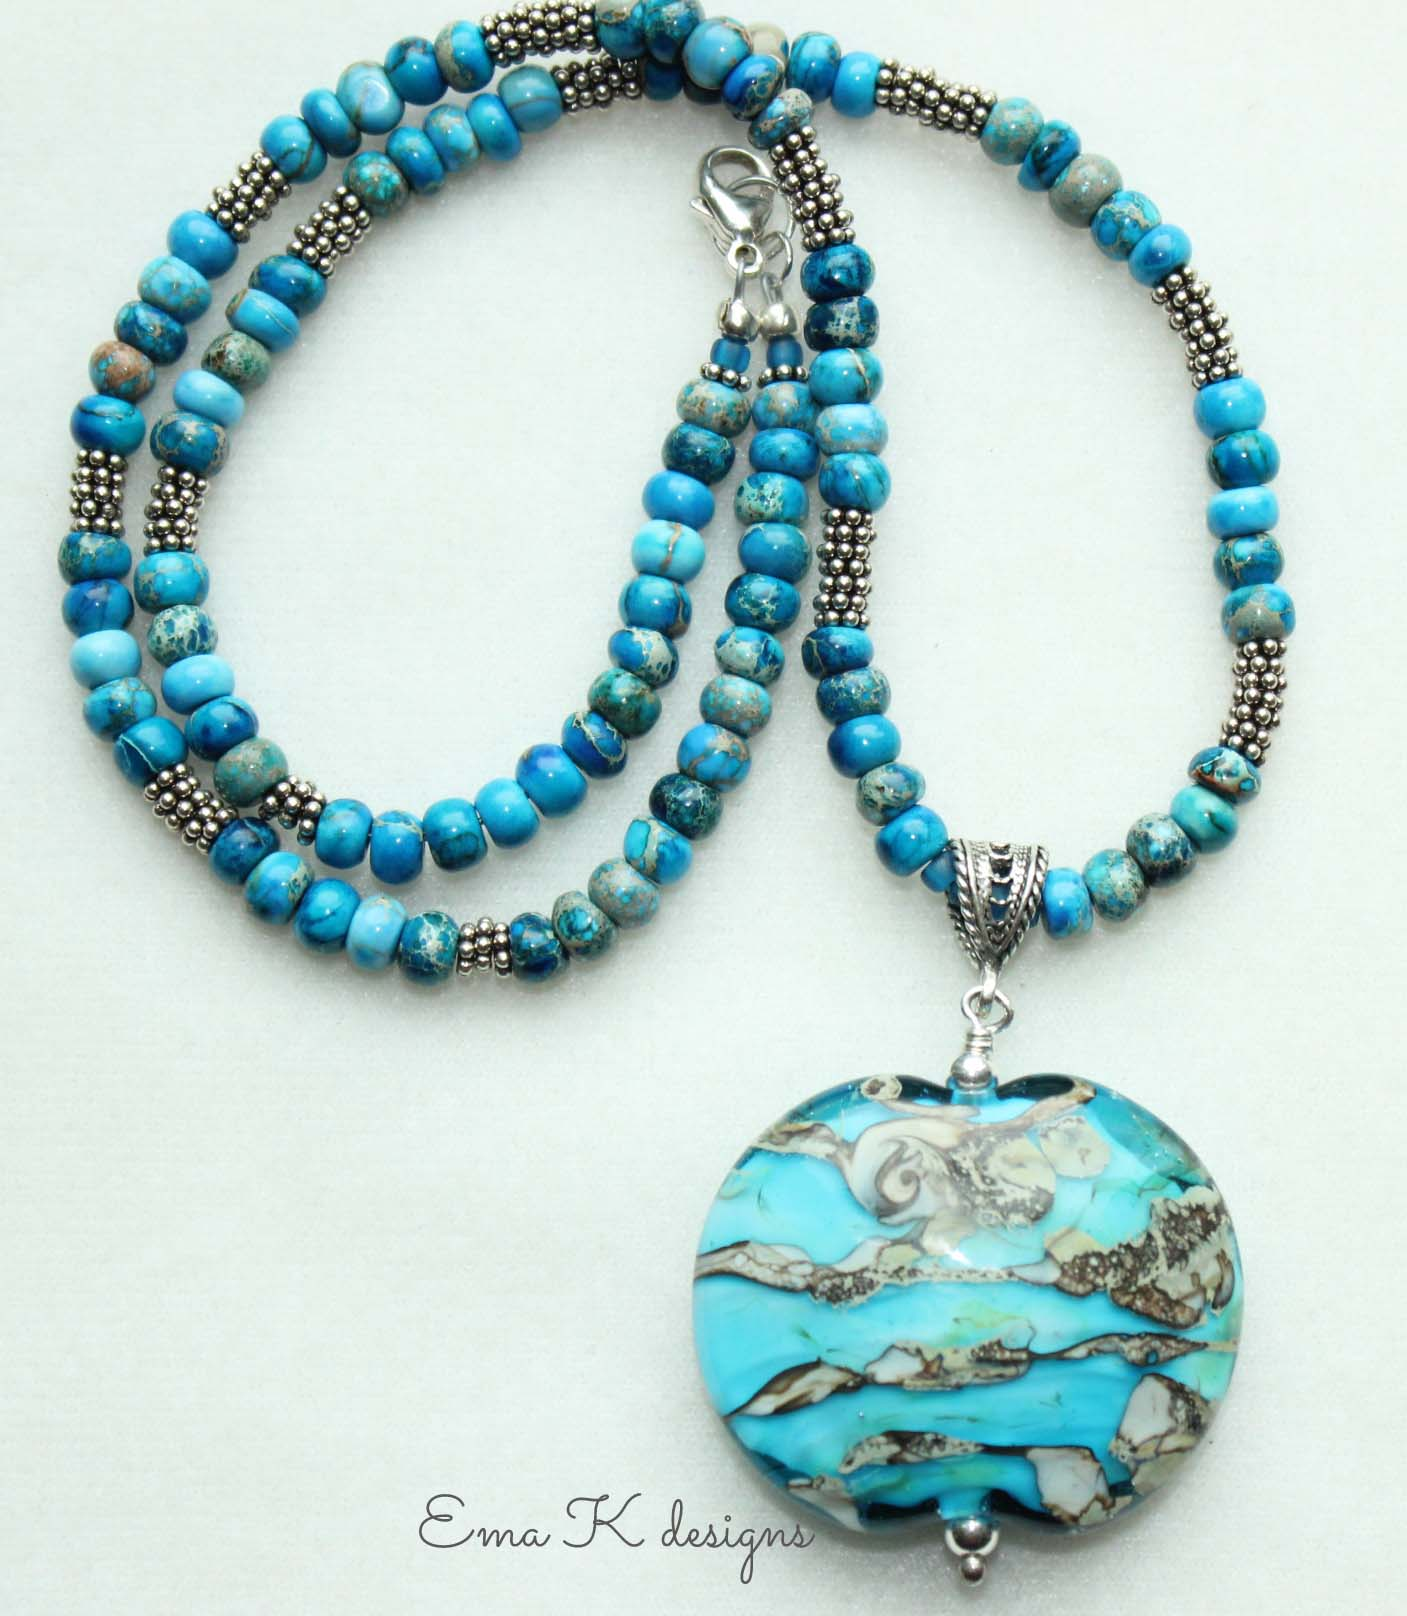 Beaded Necklace with Art Bead Focal